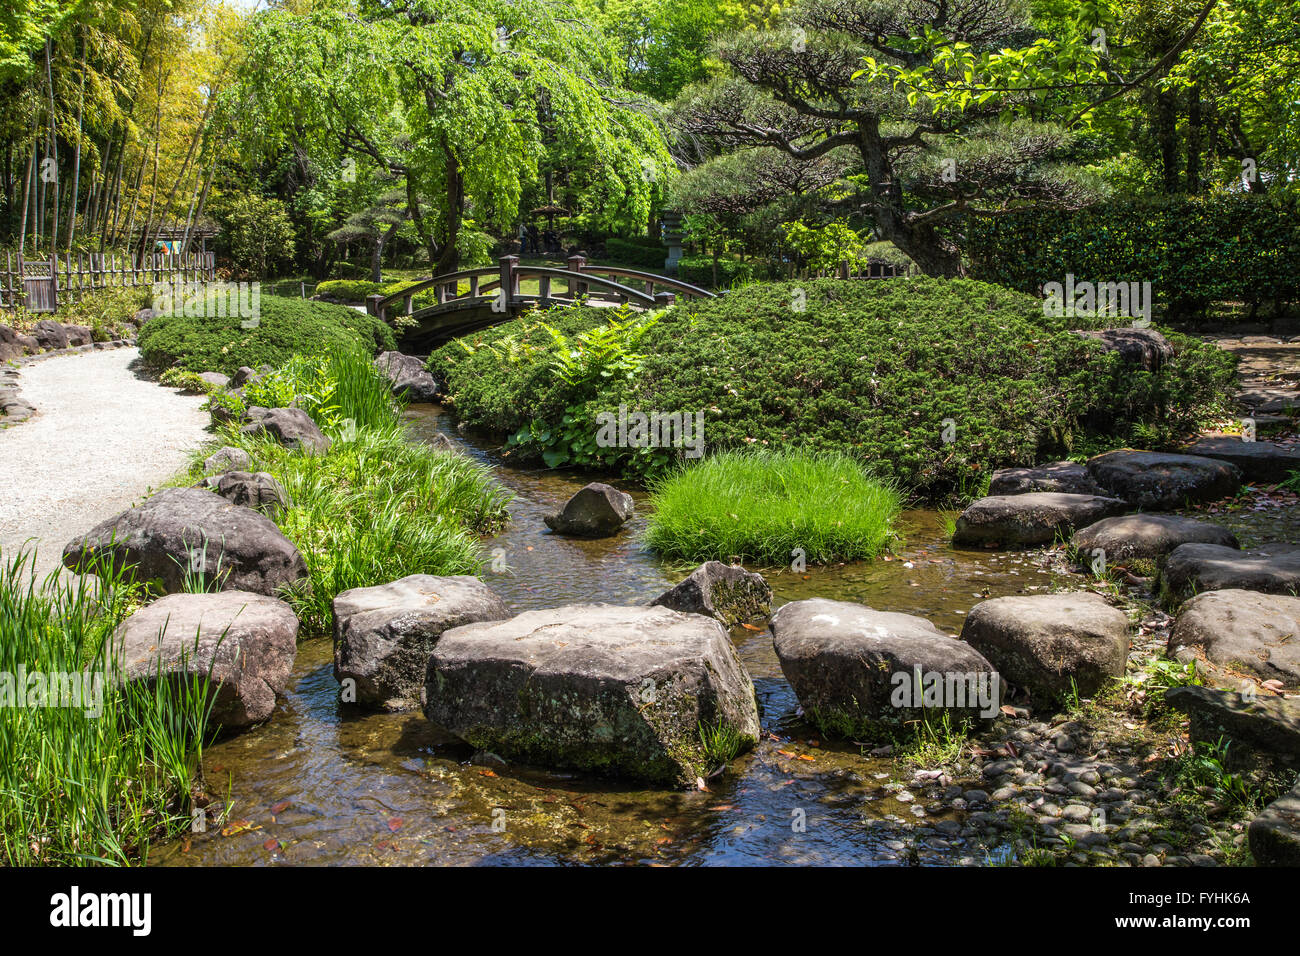 Hiratsuka Japanese Garden was built in 1989 as a strolling garden with excursion trails arranged around a pond. - Stock Image